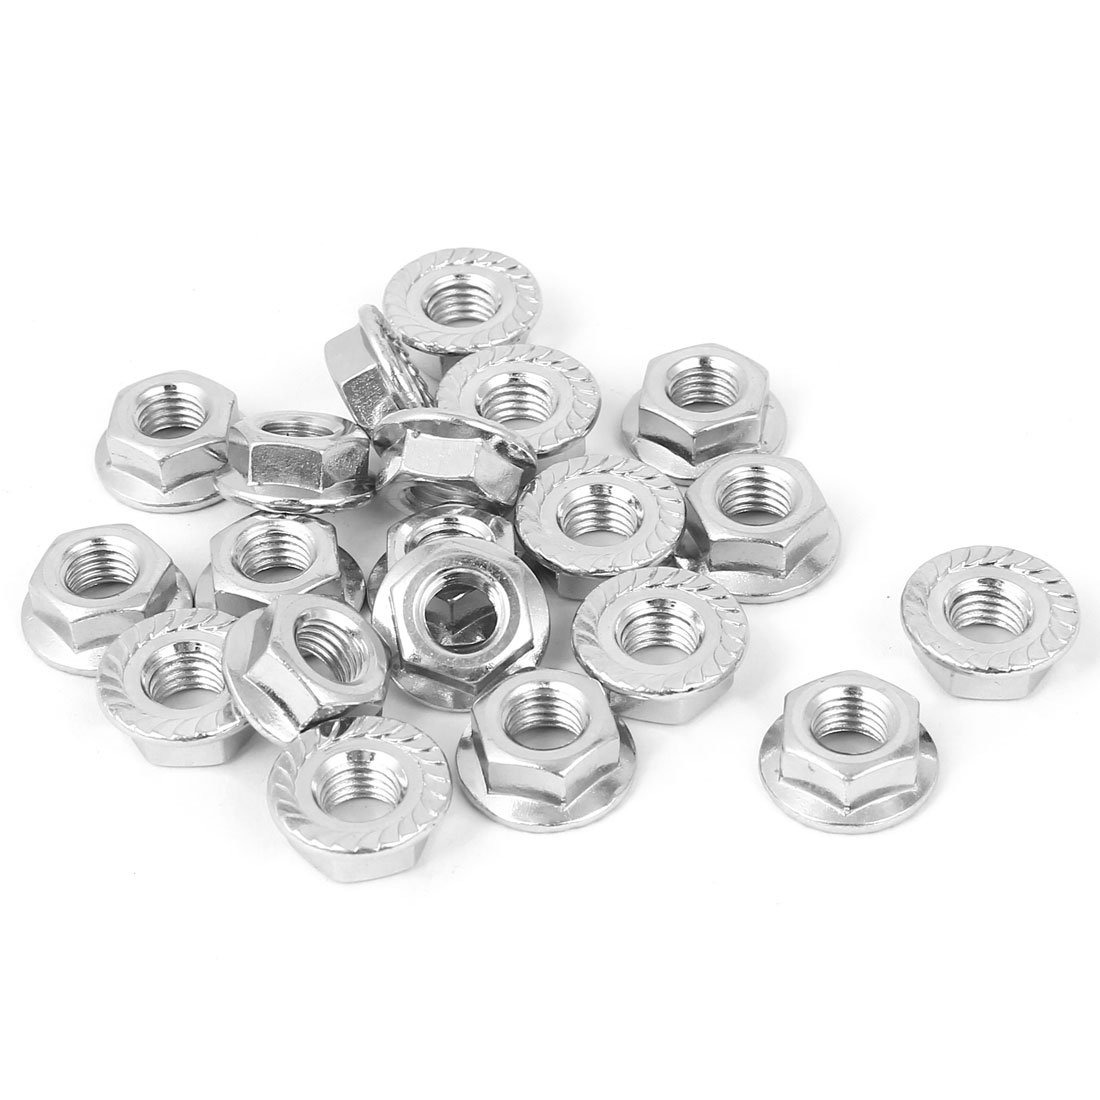 1//4-28 Fine Thread Hex Flange Nut with Serration Case Hardened Low Carbon Steel Zinc Plated Pk 50